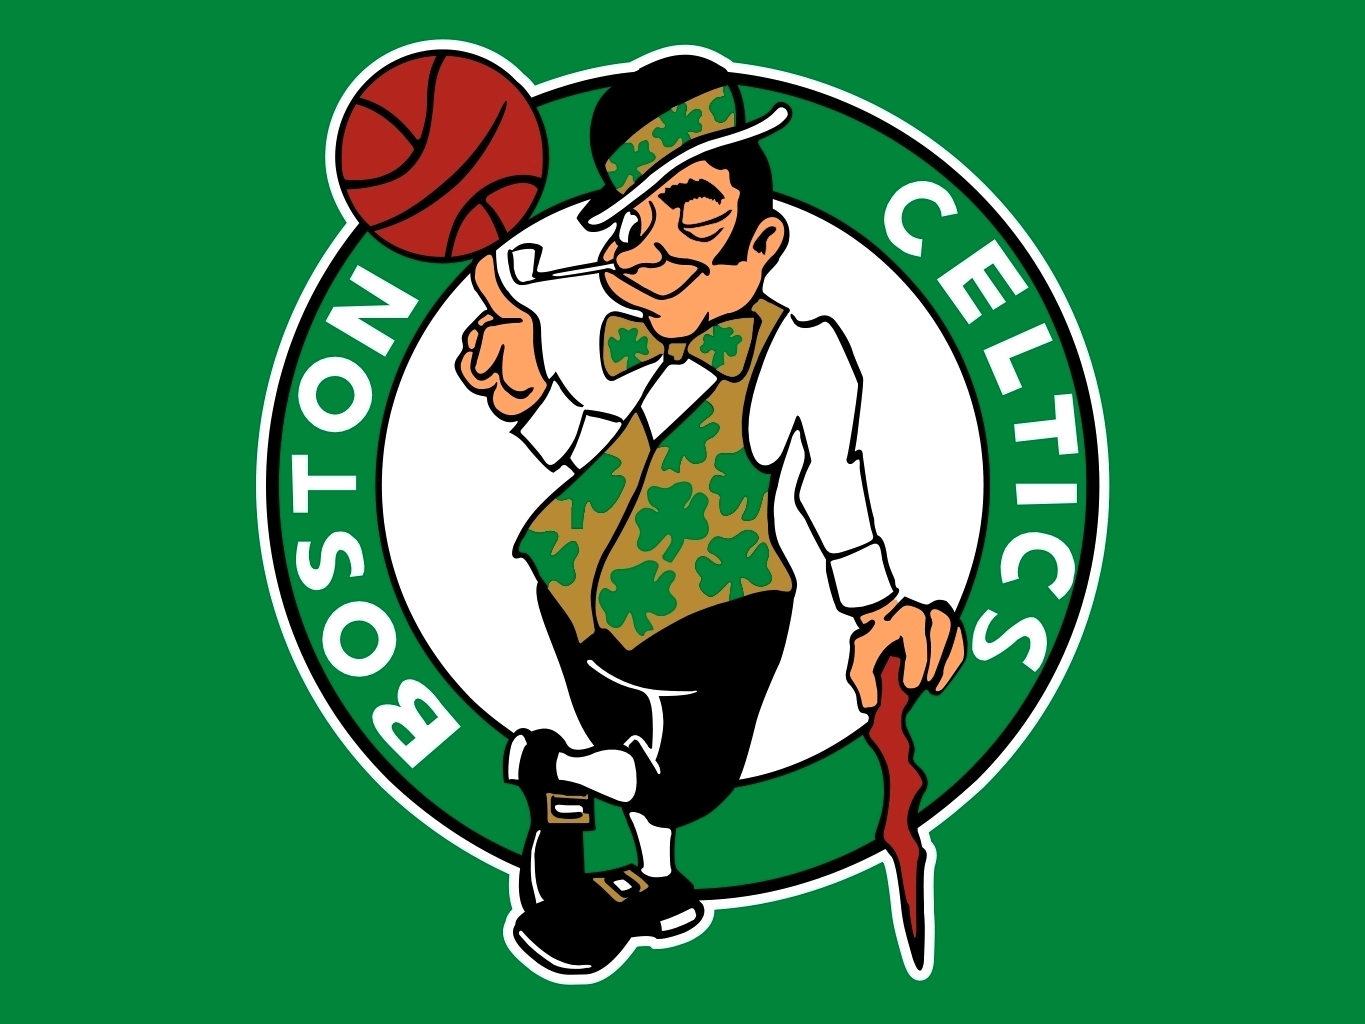 boston celtics logo wallpaper - nba wallpaper lovers | nba wallpaper